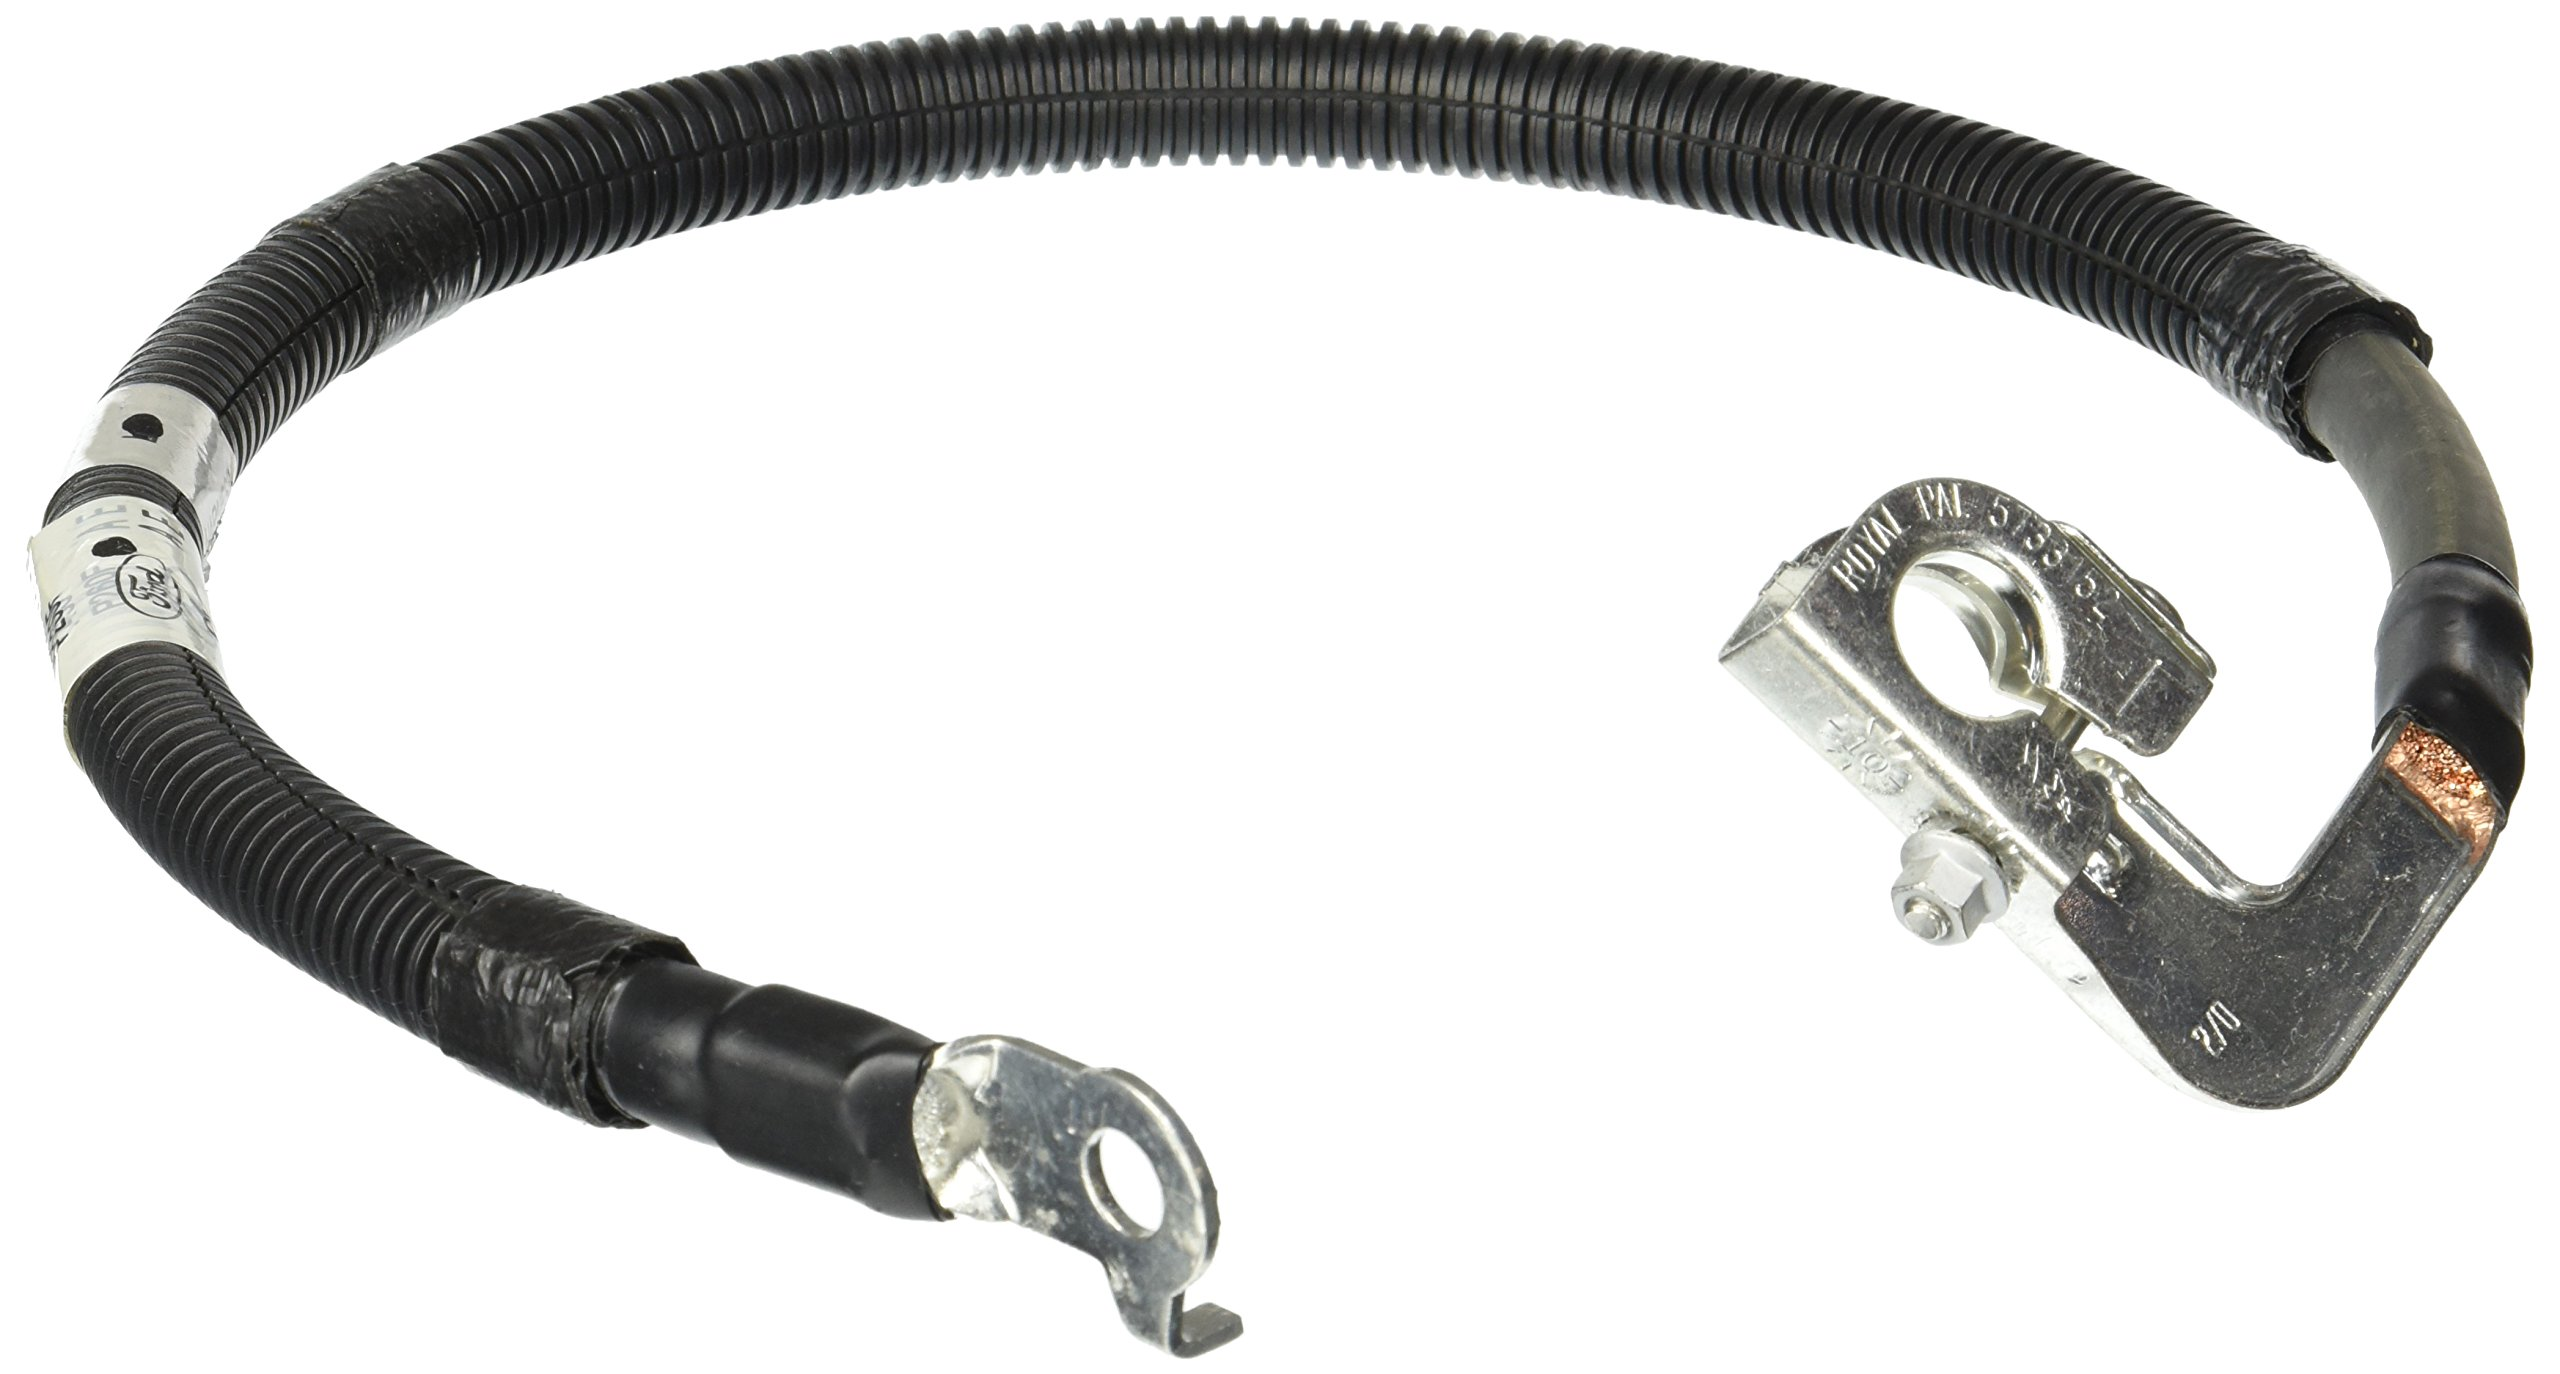 Motorcraft WC95748 Battery to Ground Cable by Motorcraft